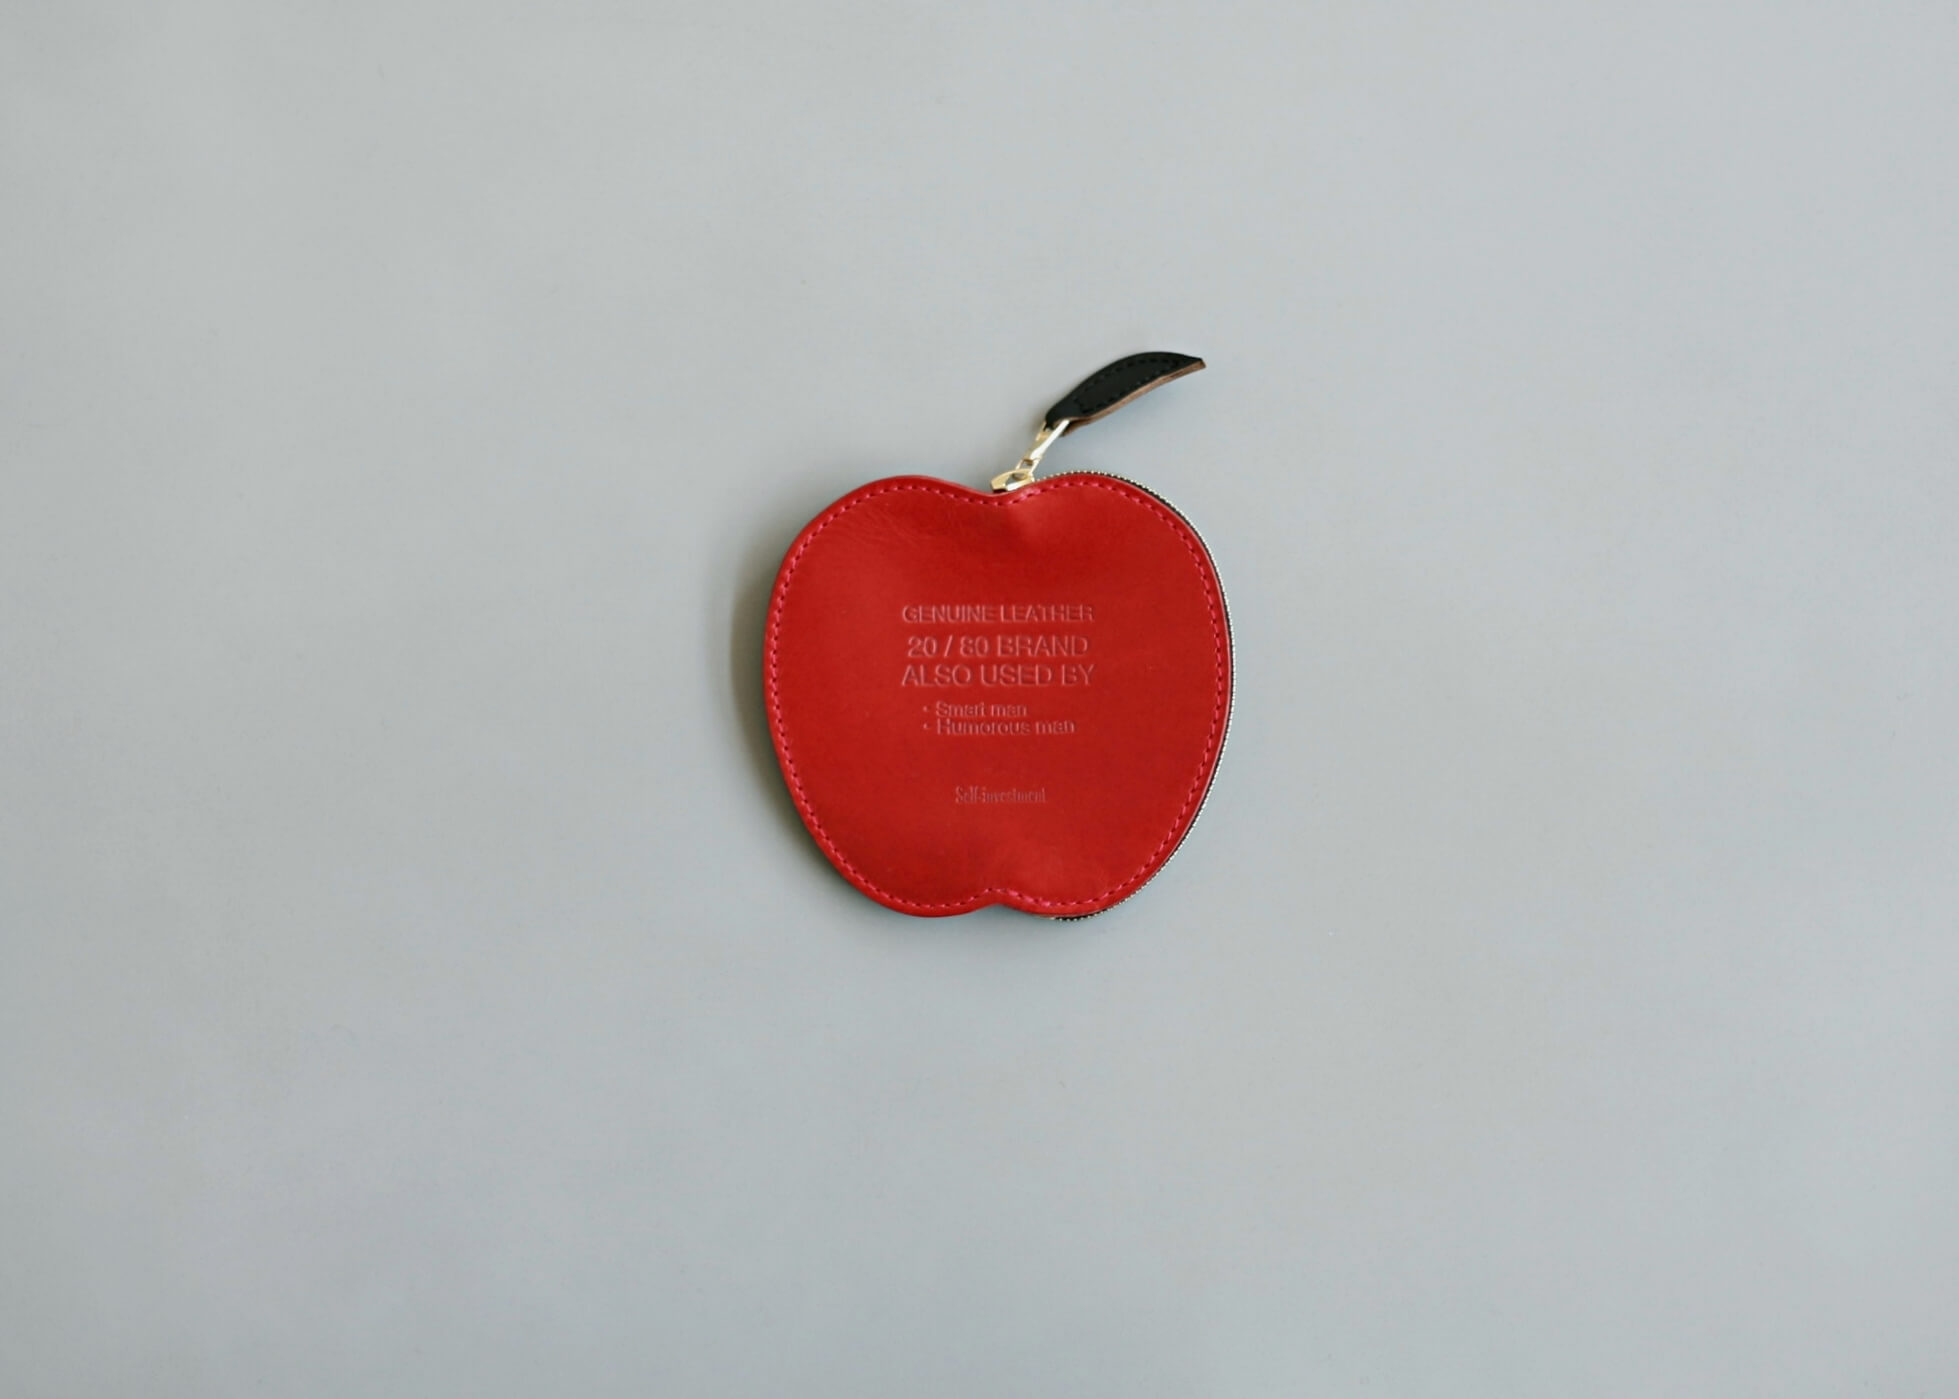 20/80 kip leather apple coin purse 表の写真